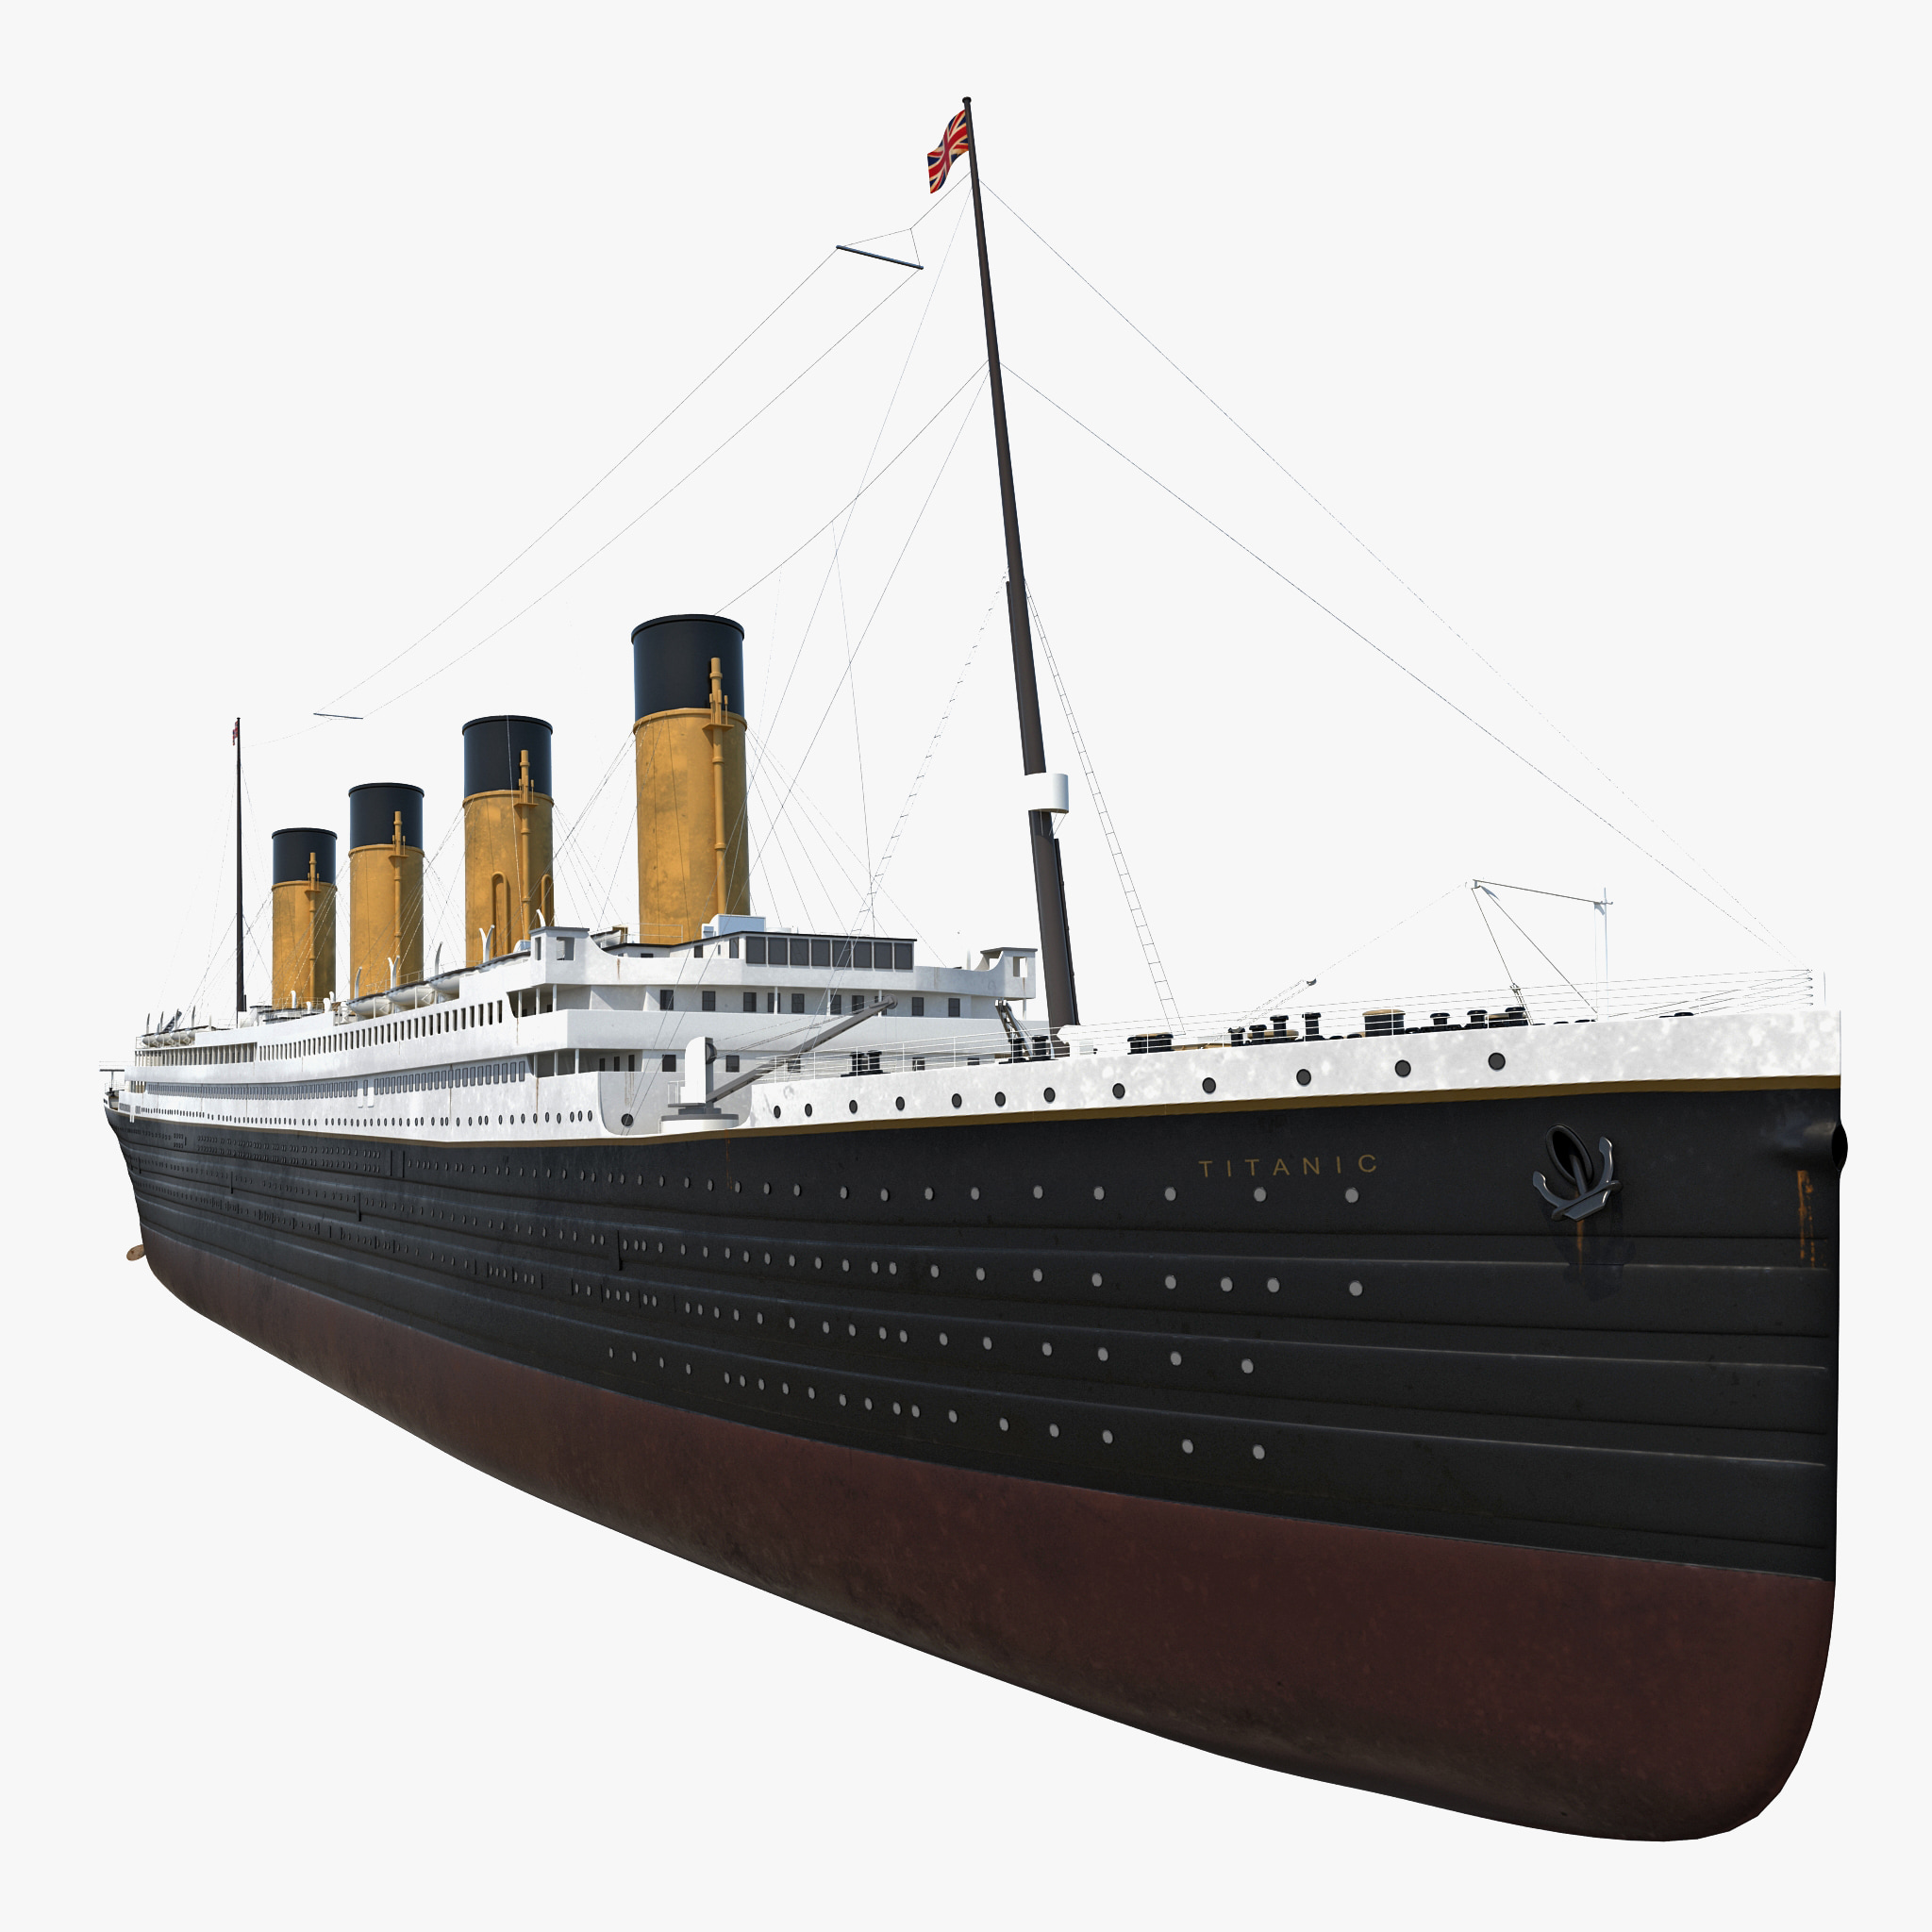 titanic ship images free - photo #35